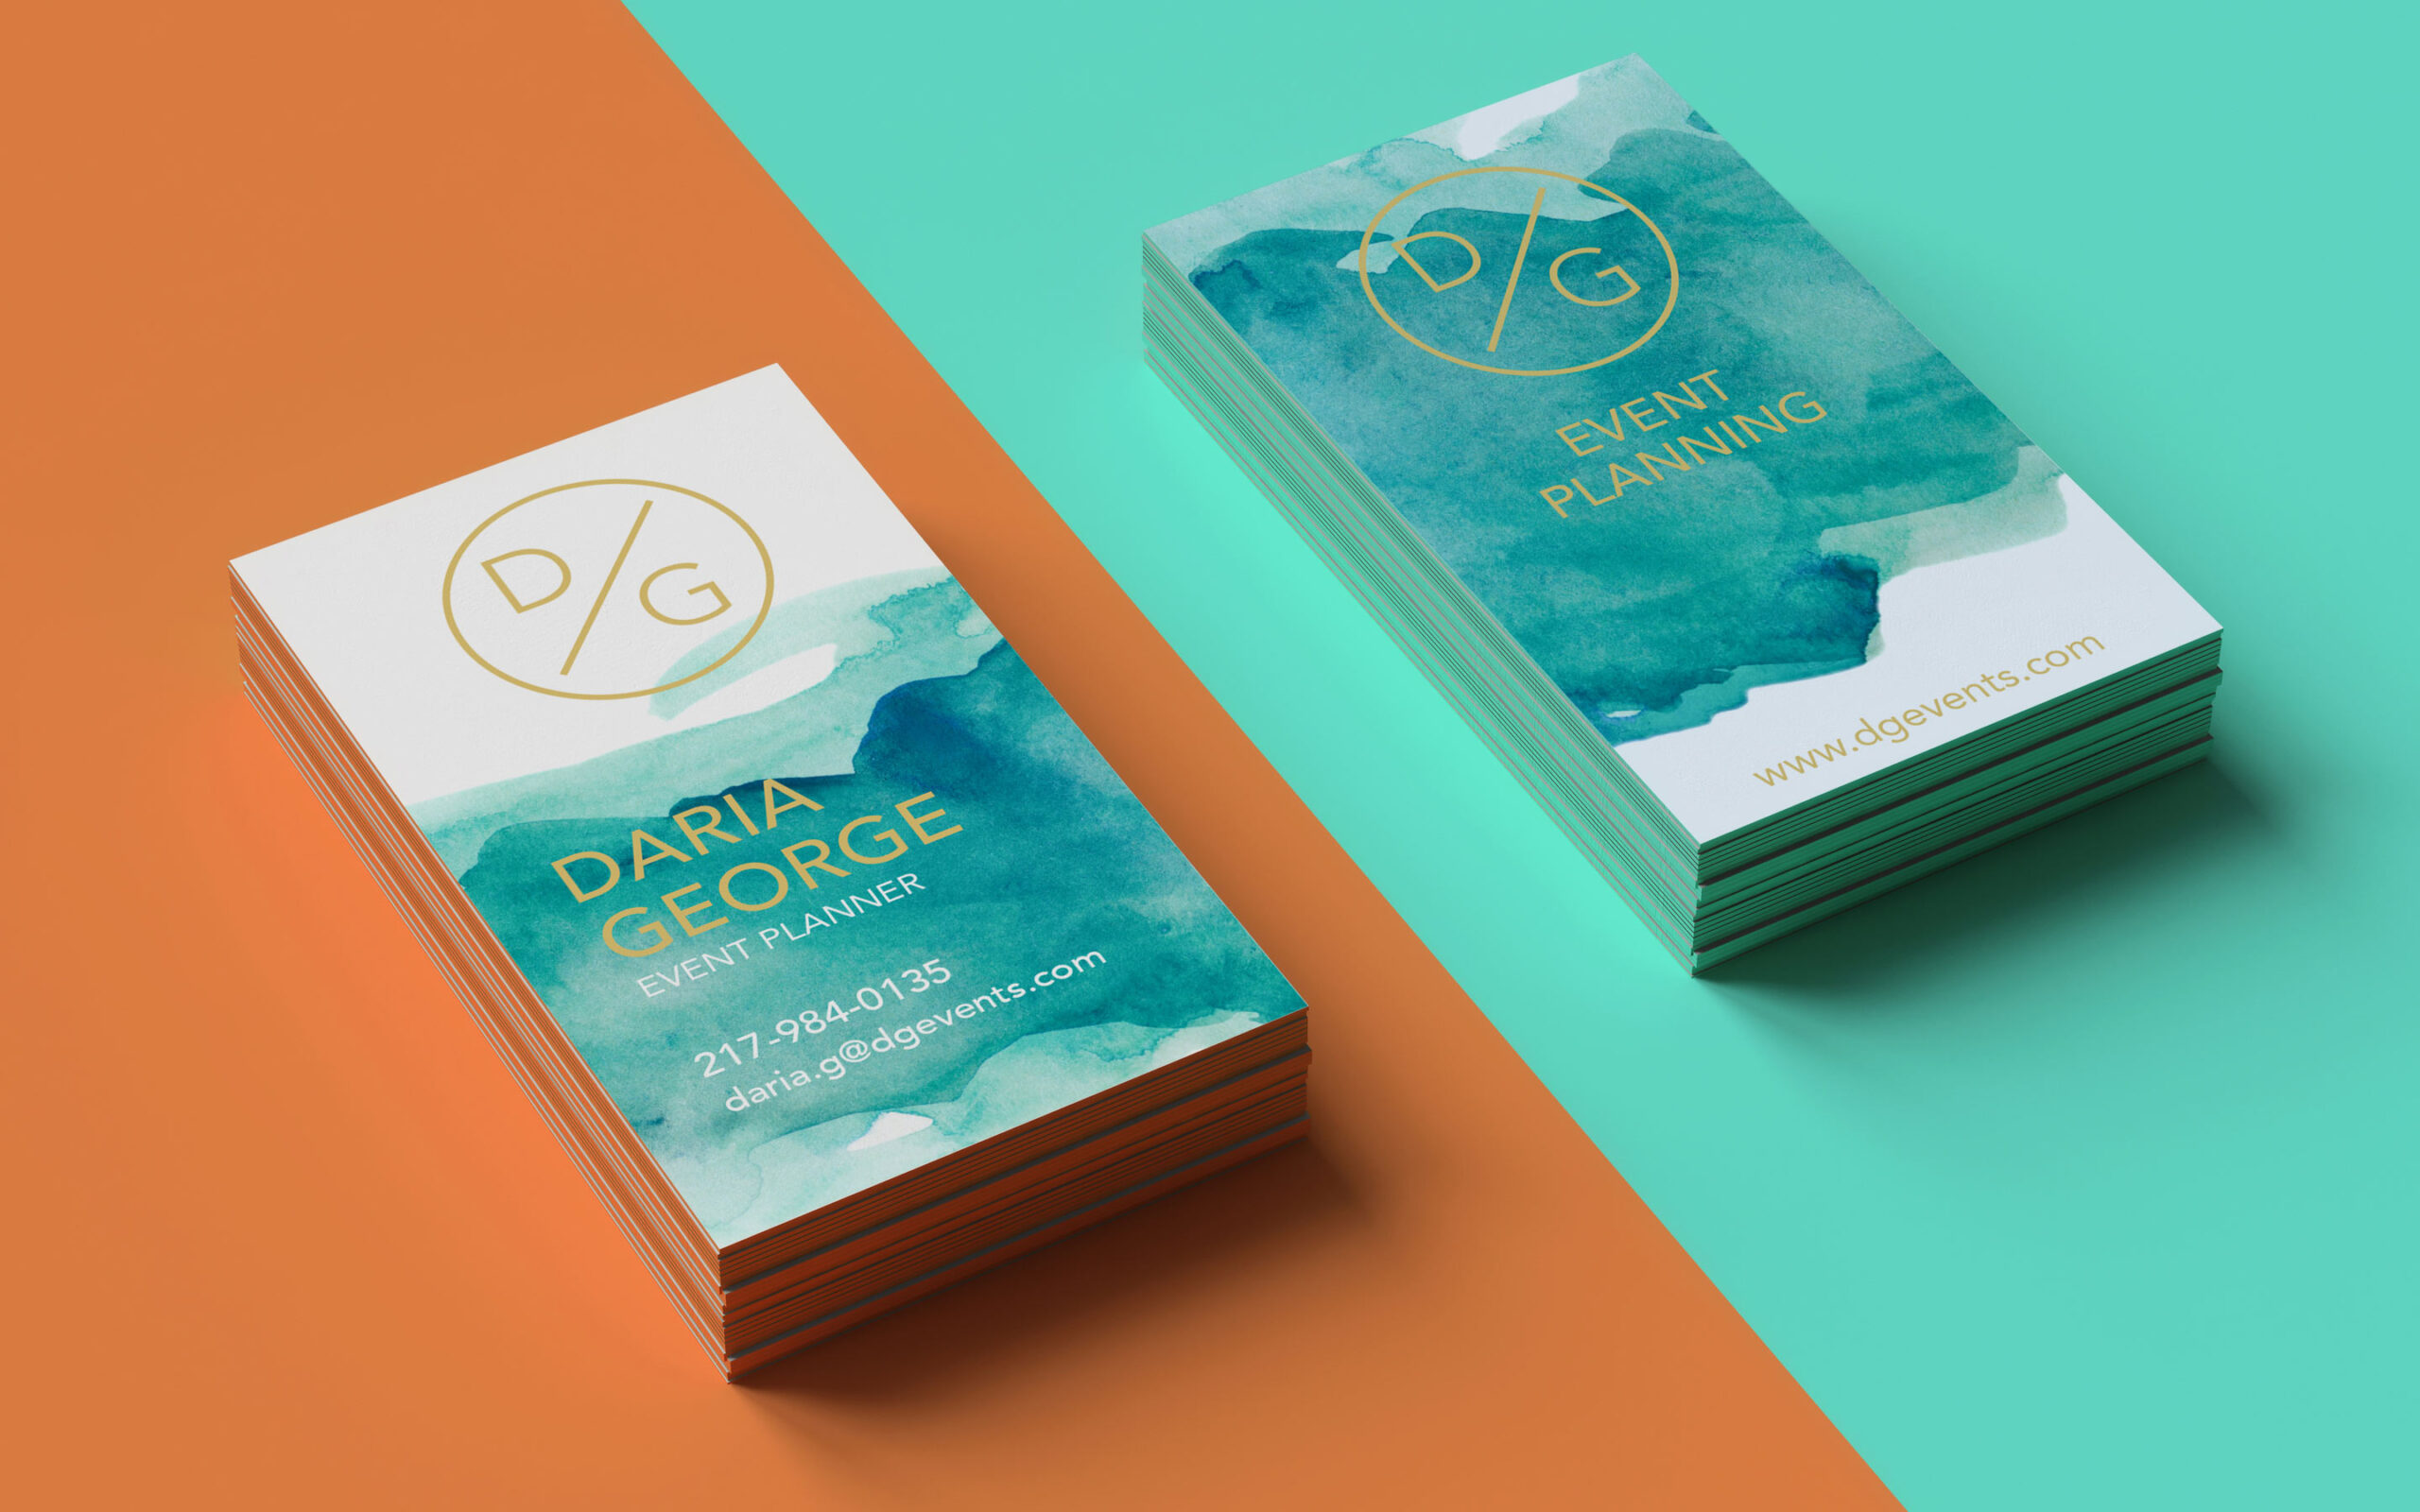 Considerations for an impactful business card